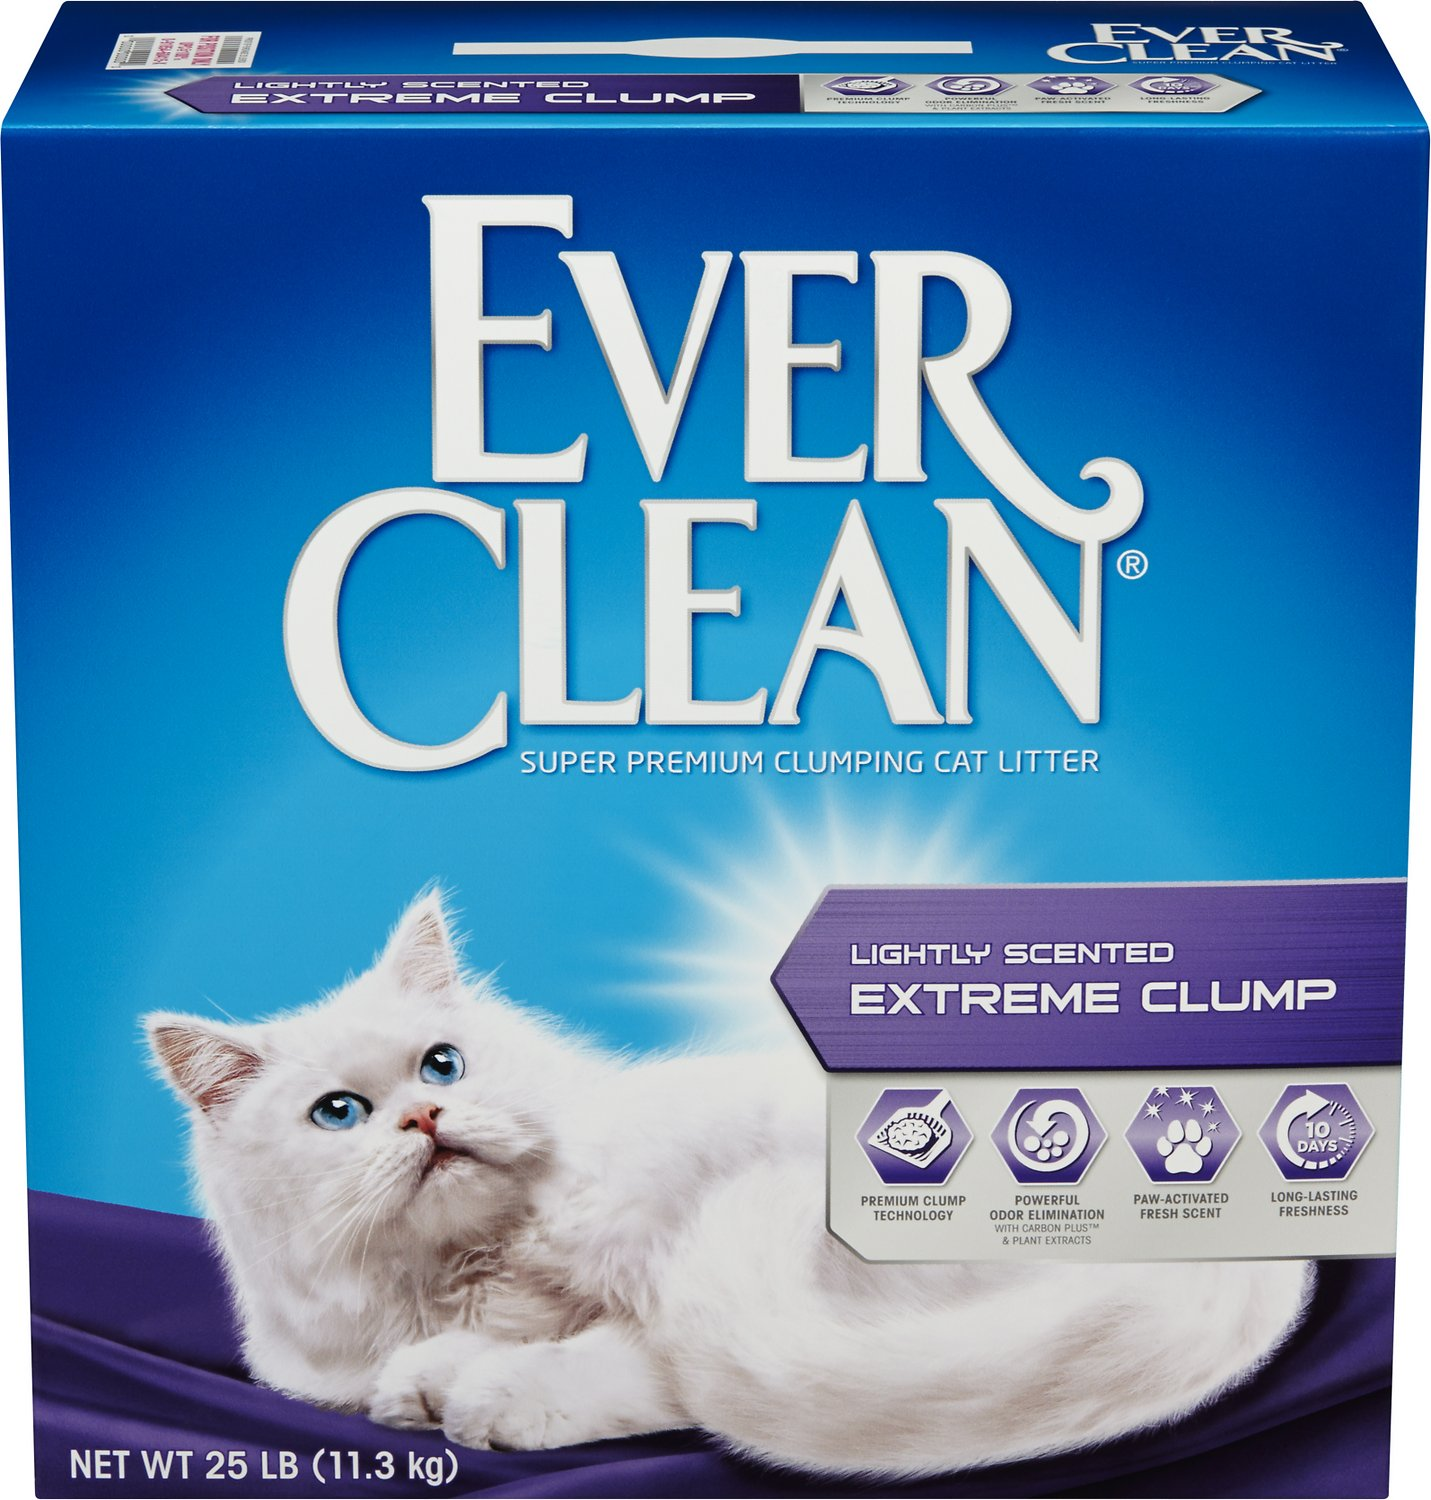 Ever Clean Lightly Scented Extreme Clump Cat Litter Image